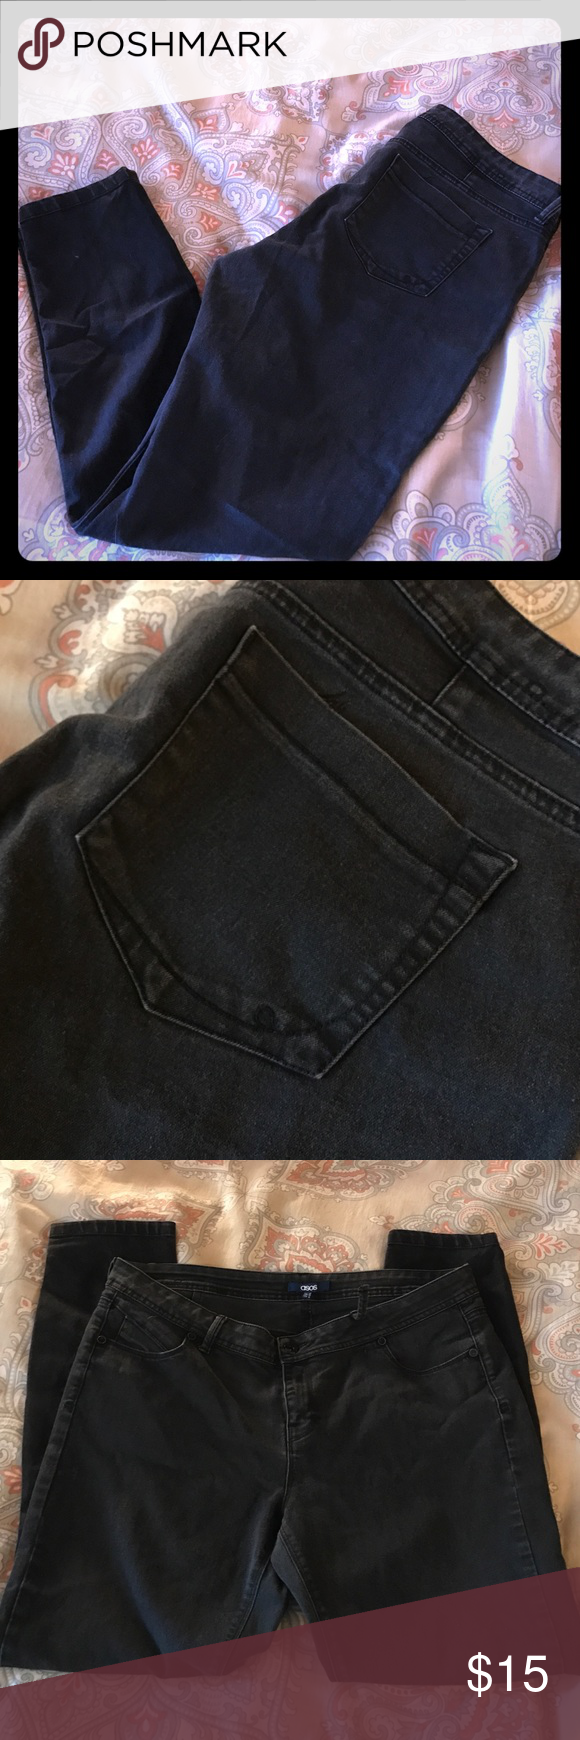 ASOS Skinny jeans w/ flaw 16 These are amazing skinny jeans and I wish they still fit me. They do have a small issue in that one belt loop has detached. There are no holes, it just needs to be resewn down. Perfect condition otherwise. Doesn't effect wear and is easily covered. ASOS Jeans Skinny